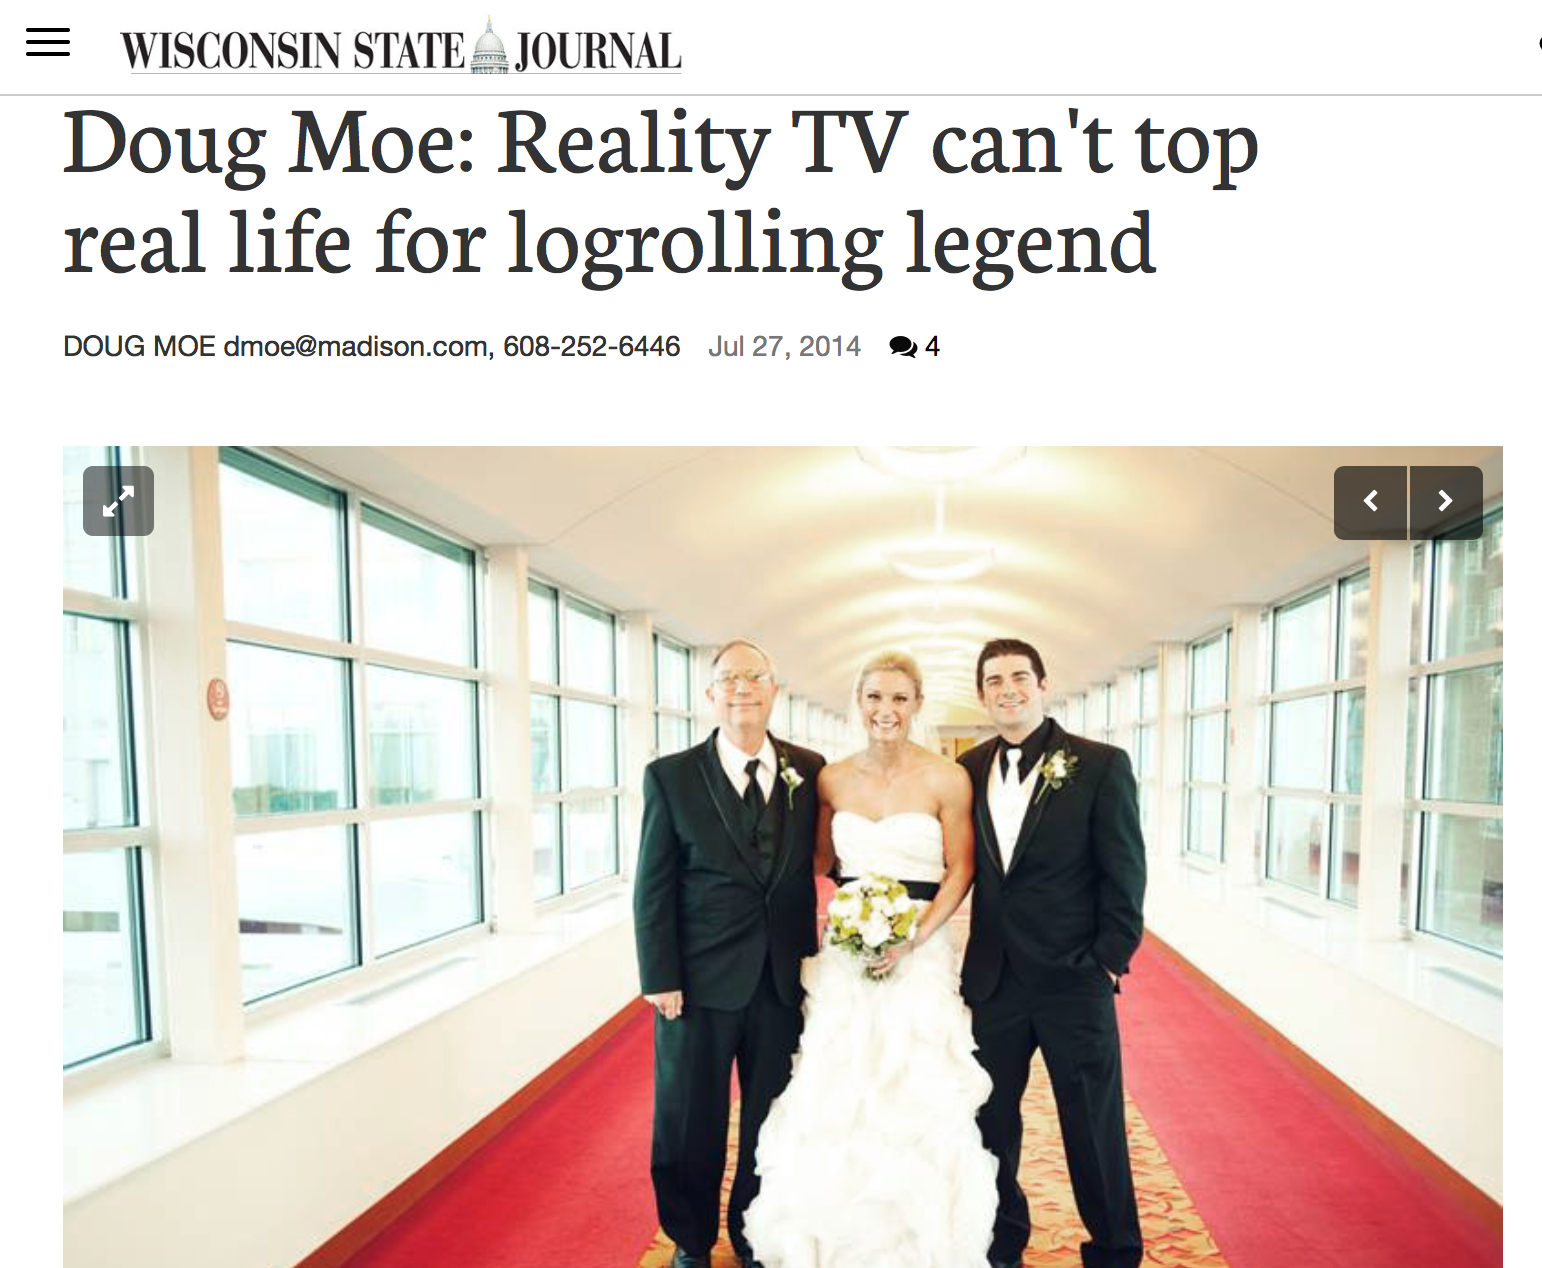 Reality TV Can't Top Real Life for Log Rolling Legend: Wisconsin State Journal 2014